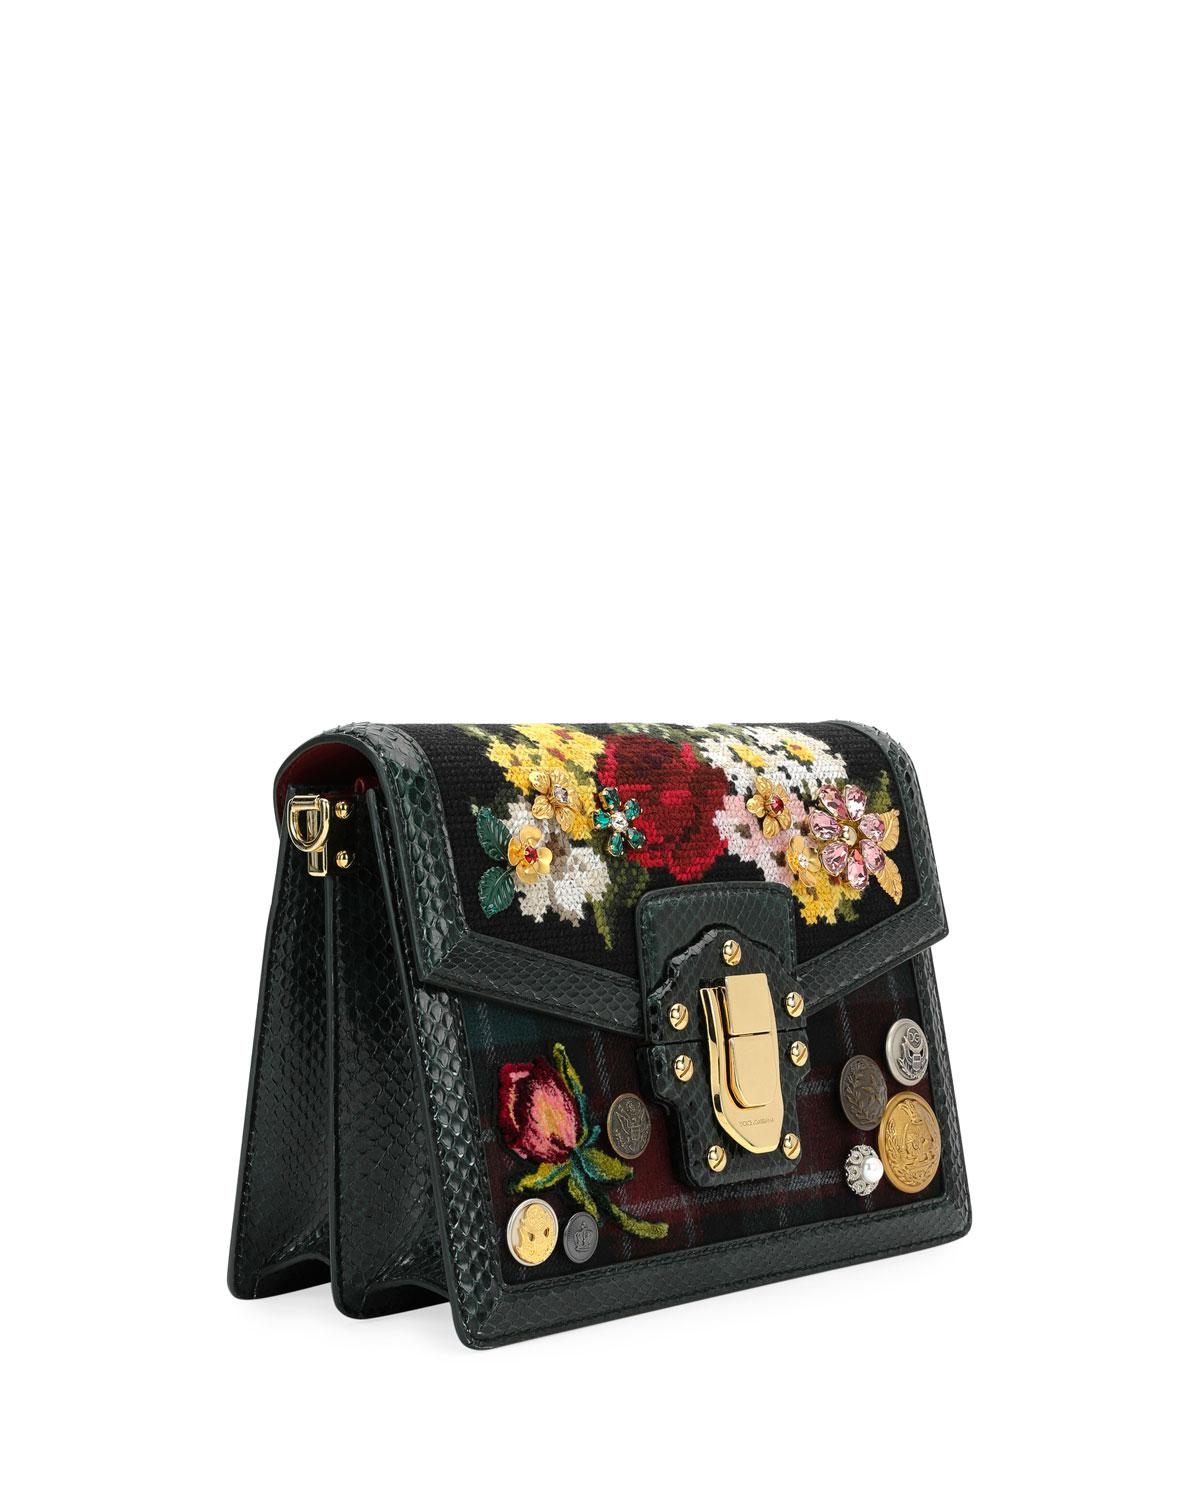 b31061dcaa03 Lyst - Dolce   gabbana Lucia Floral Needlepoint Shoulder Bag in Black